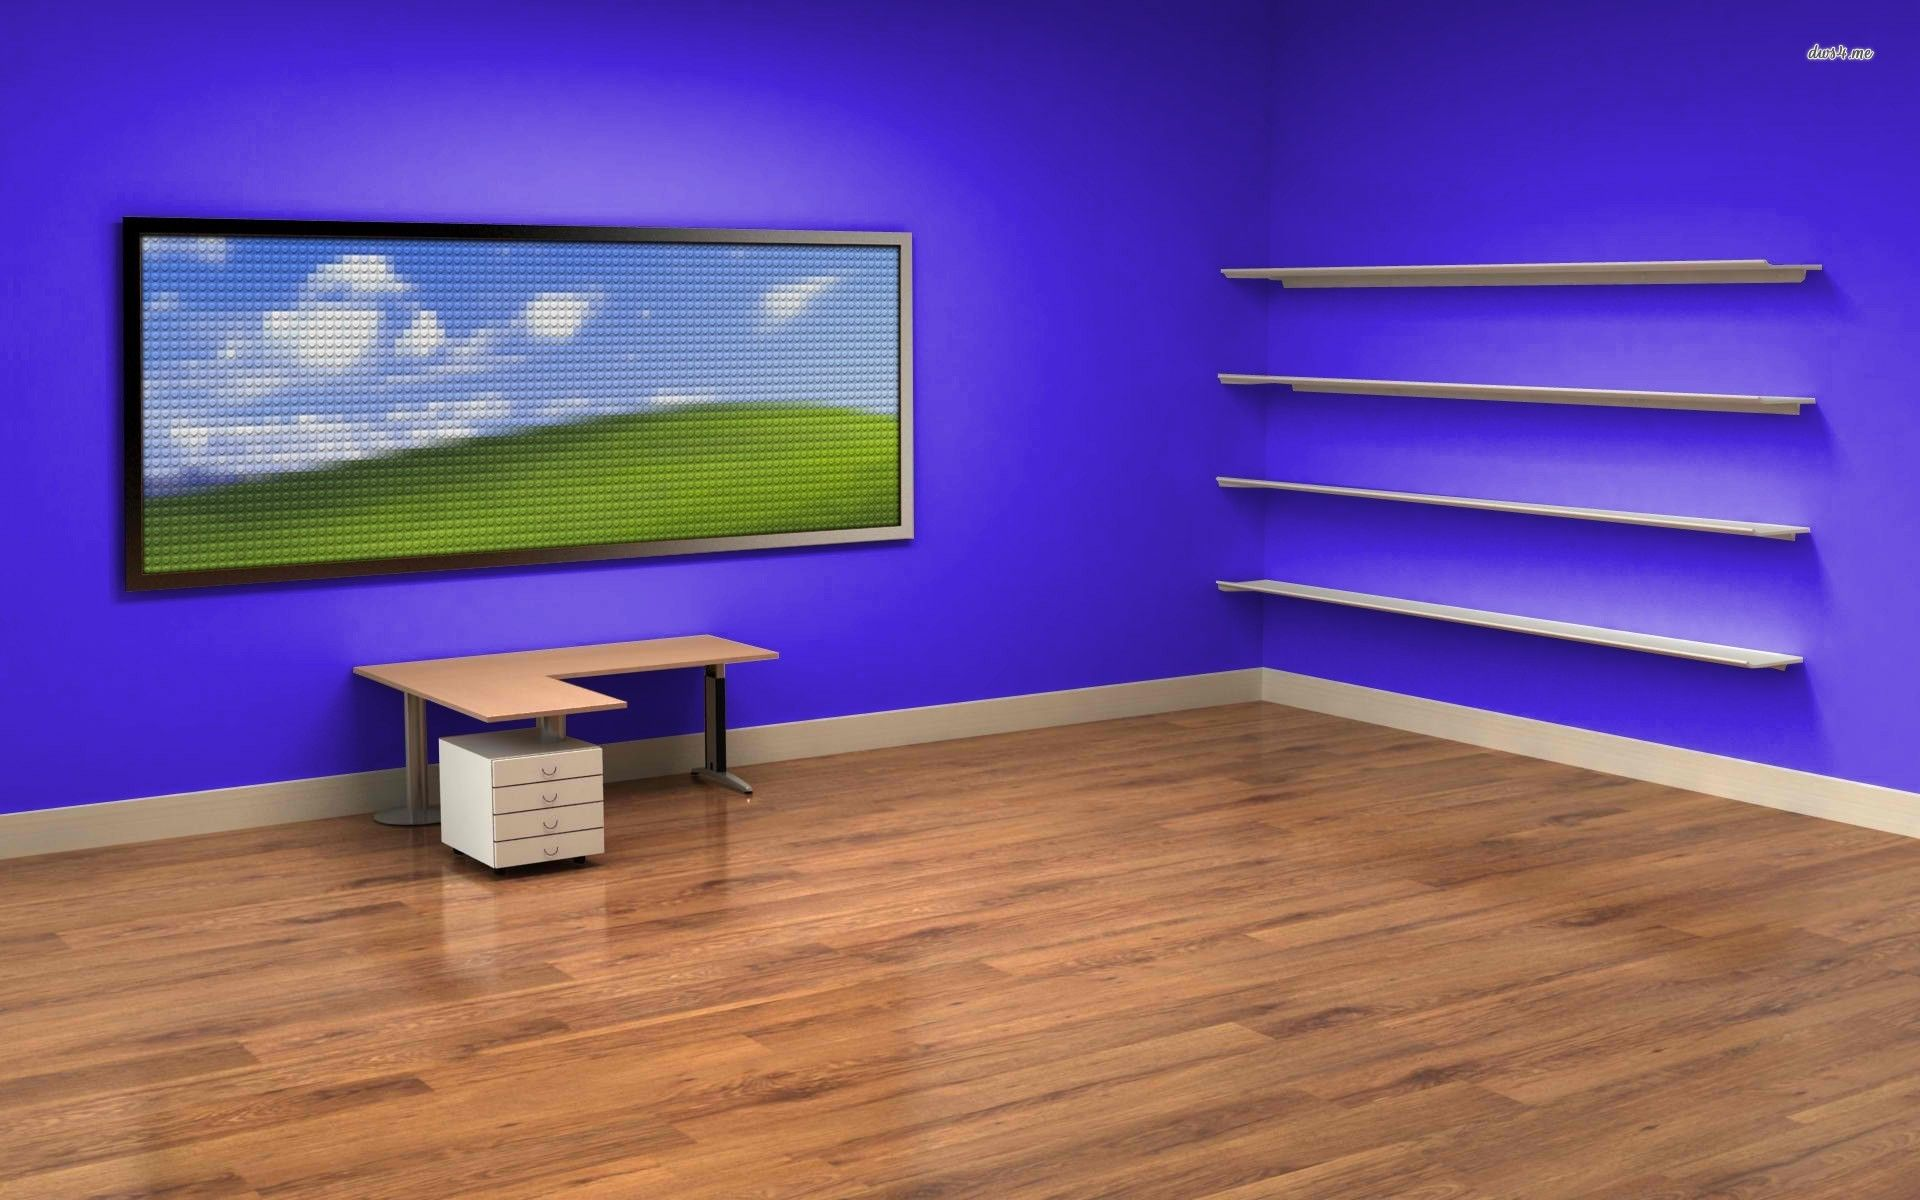 wallpapers for computers with shelves - photo #9